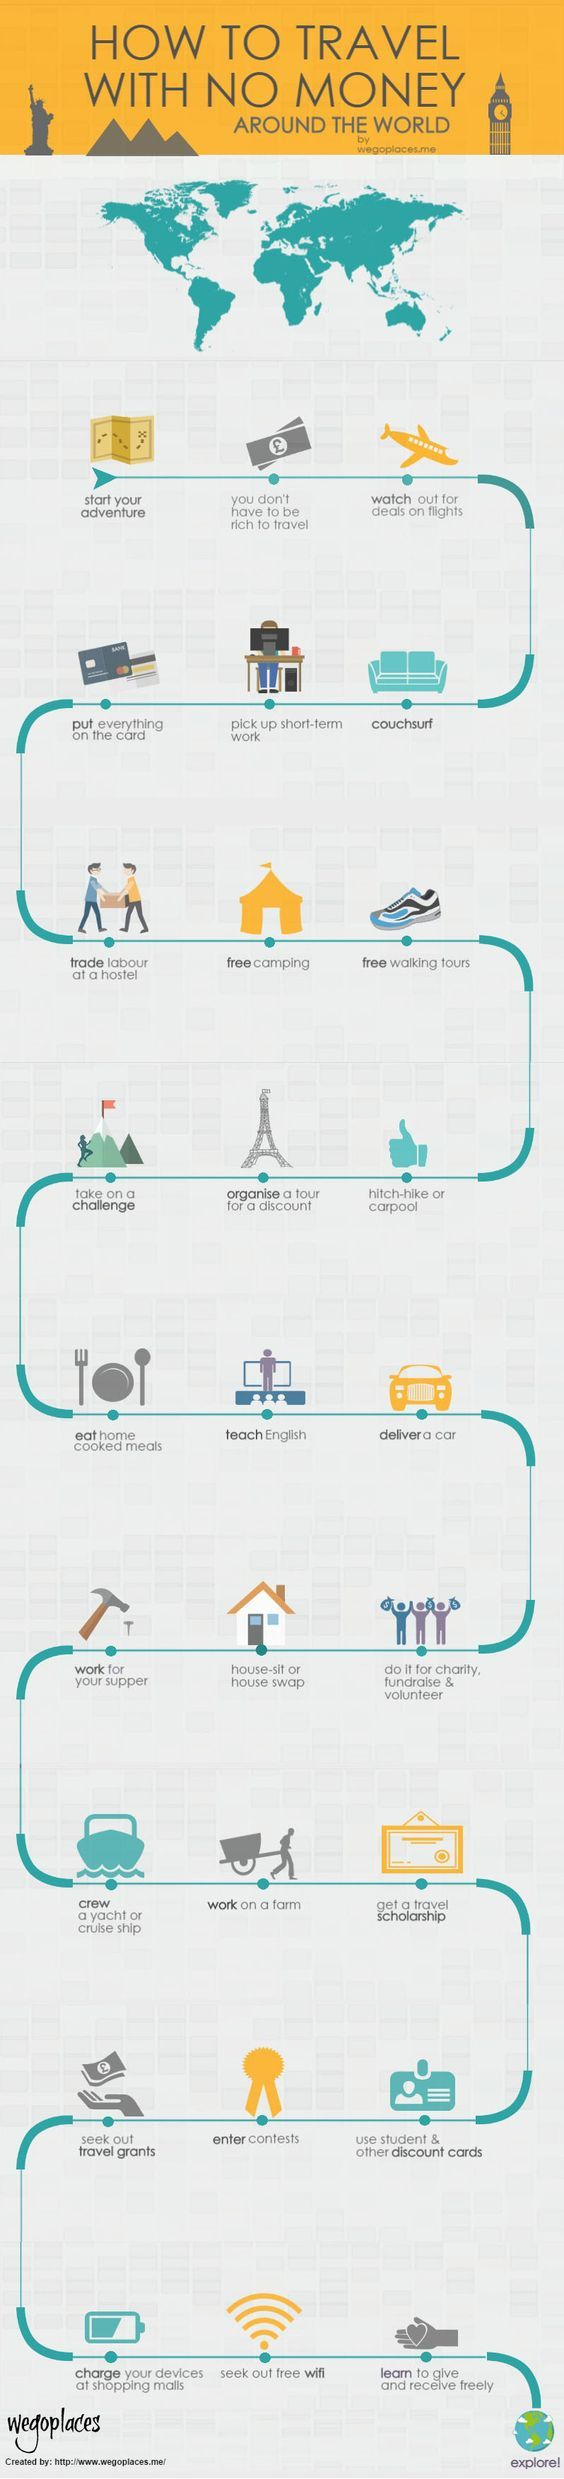 Learn how to travel with no money (or very cheaply) in Europe & around the world with this inforgraphic. Teach English, hitchike, carpool & work on a farm!  #Travel #Exotic #ShermanFinancialGroup